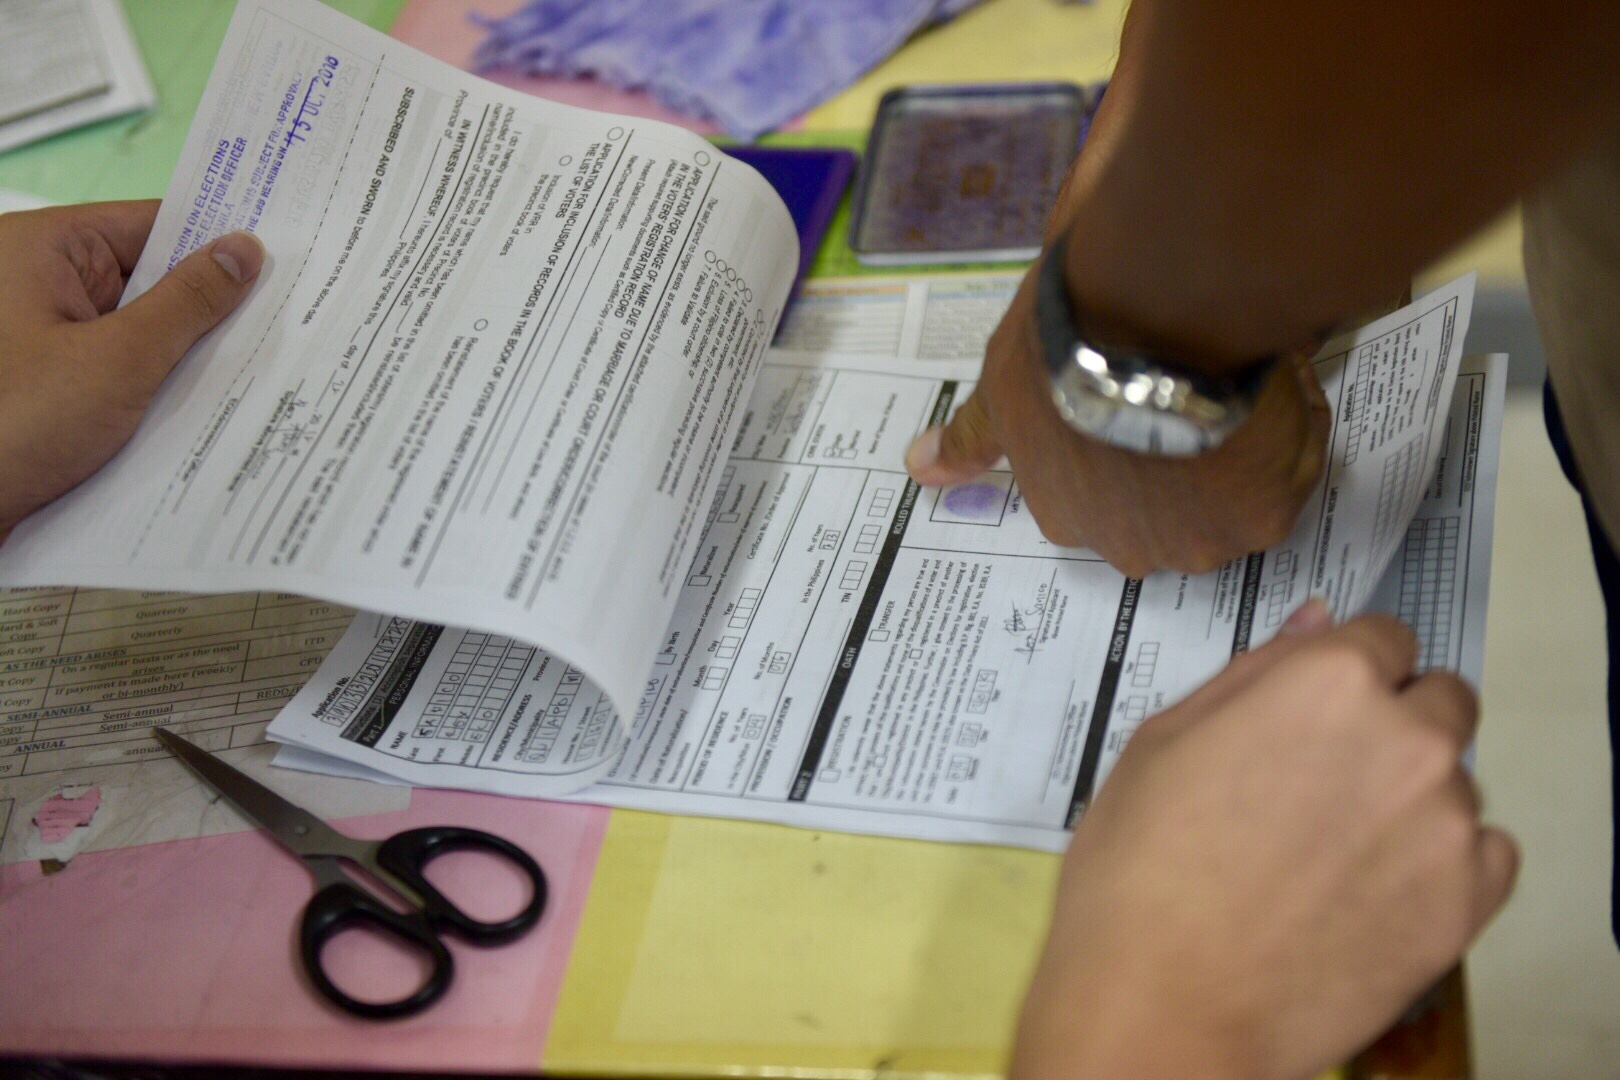 REGISTER. Voters trying to beat the September 29 registration deadline rush to the Comelec office in Arroceros, Manila on September 28, 2018. Photo by LeAnne Jazul/Rappler